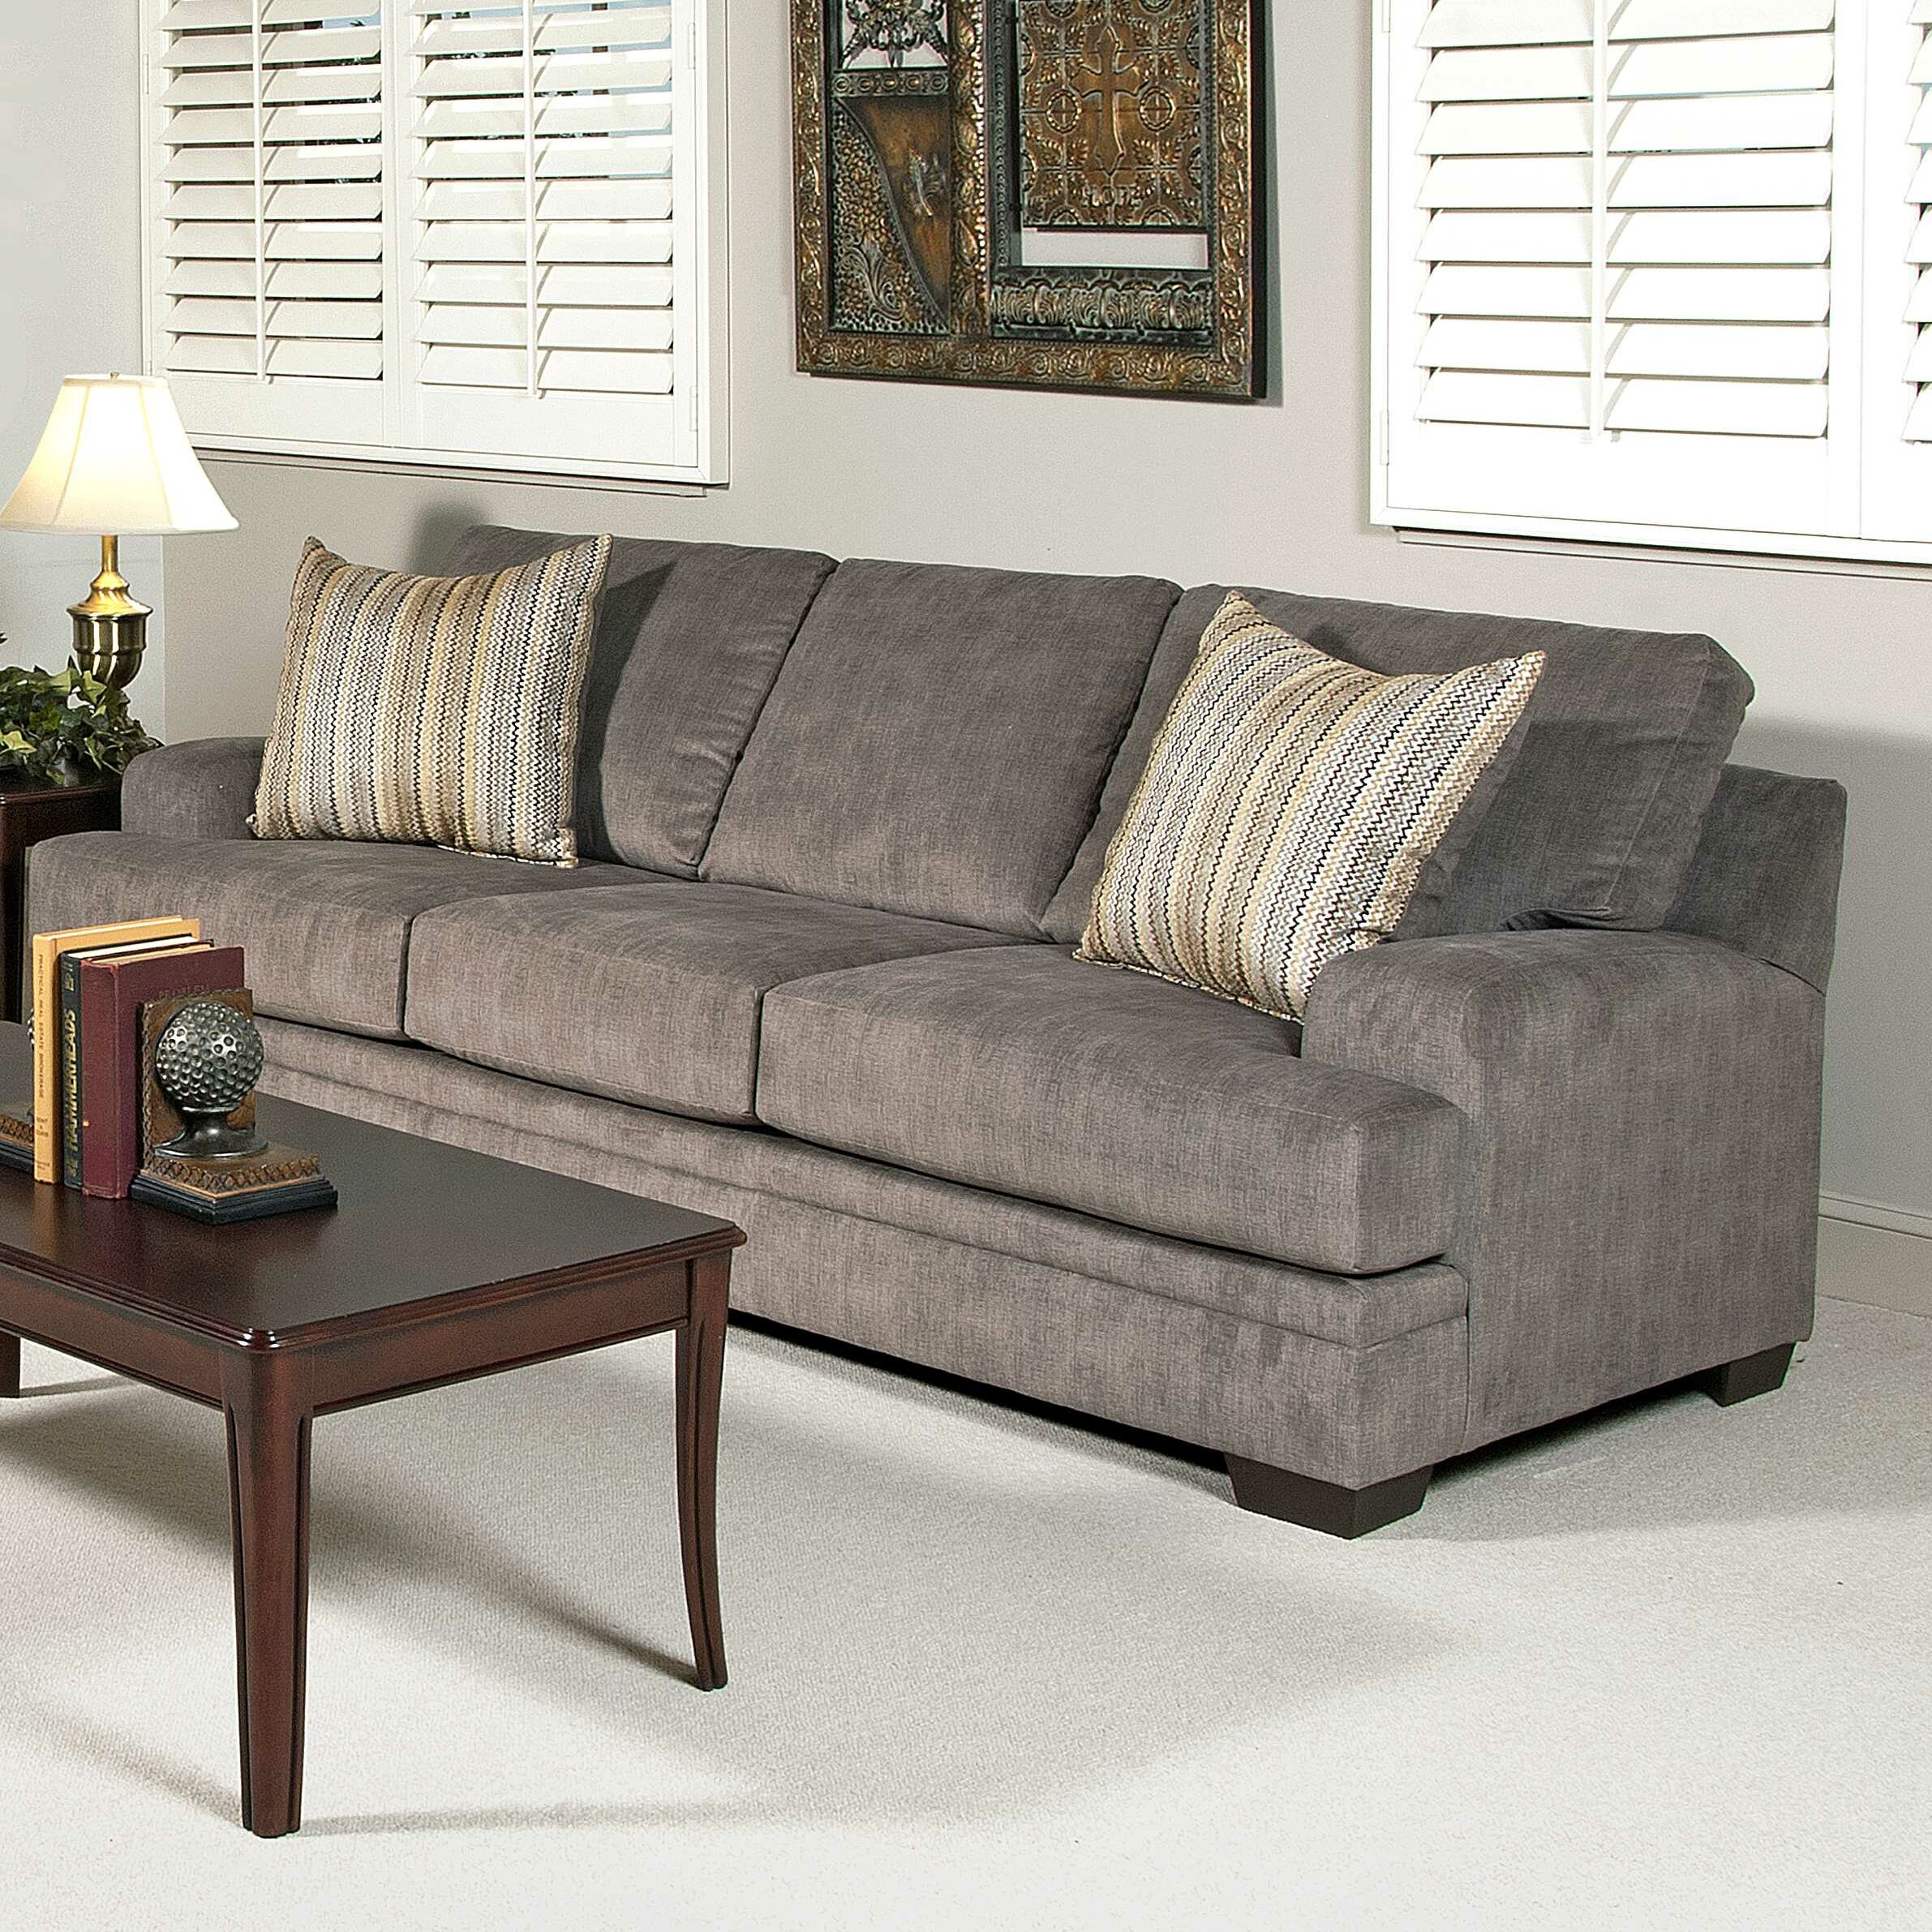 Furniture Upholstry: Serta Upholstery Vermont Sofa & Reviews